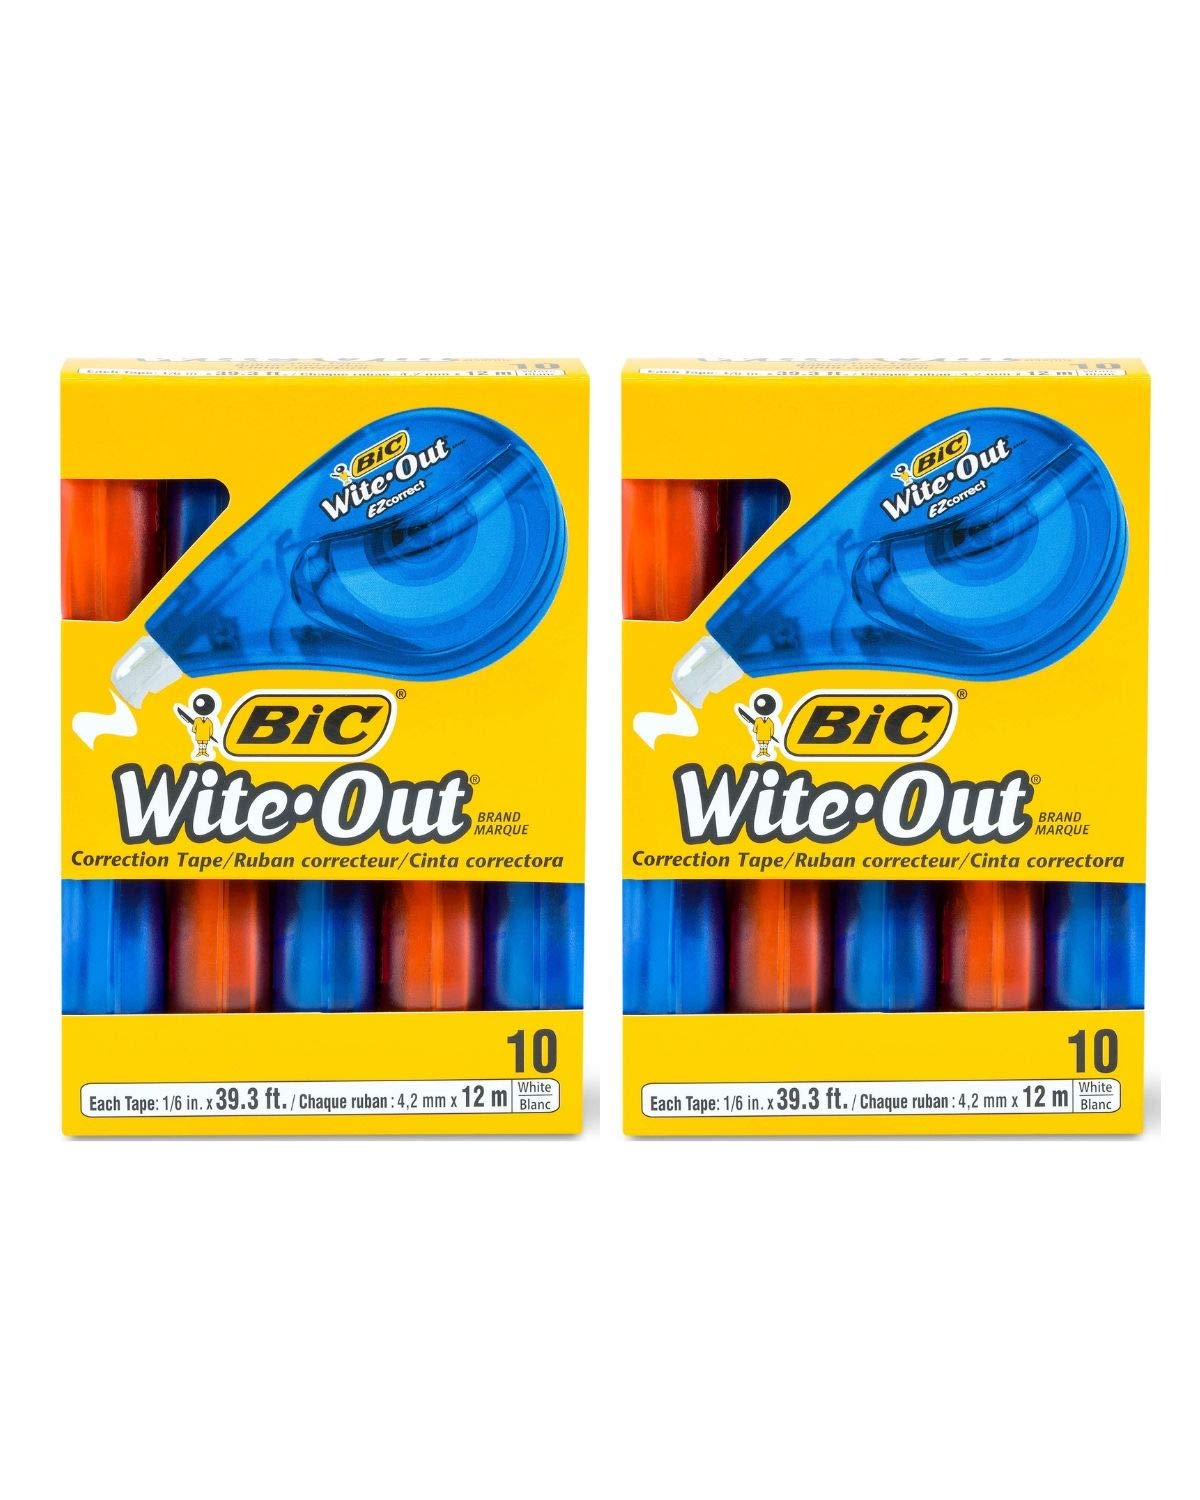 BIC Wite-Out Brand EZ Correct Correction Tape, White, 10-Count 2 Boxes